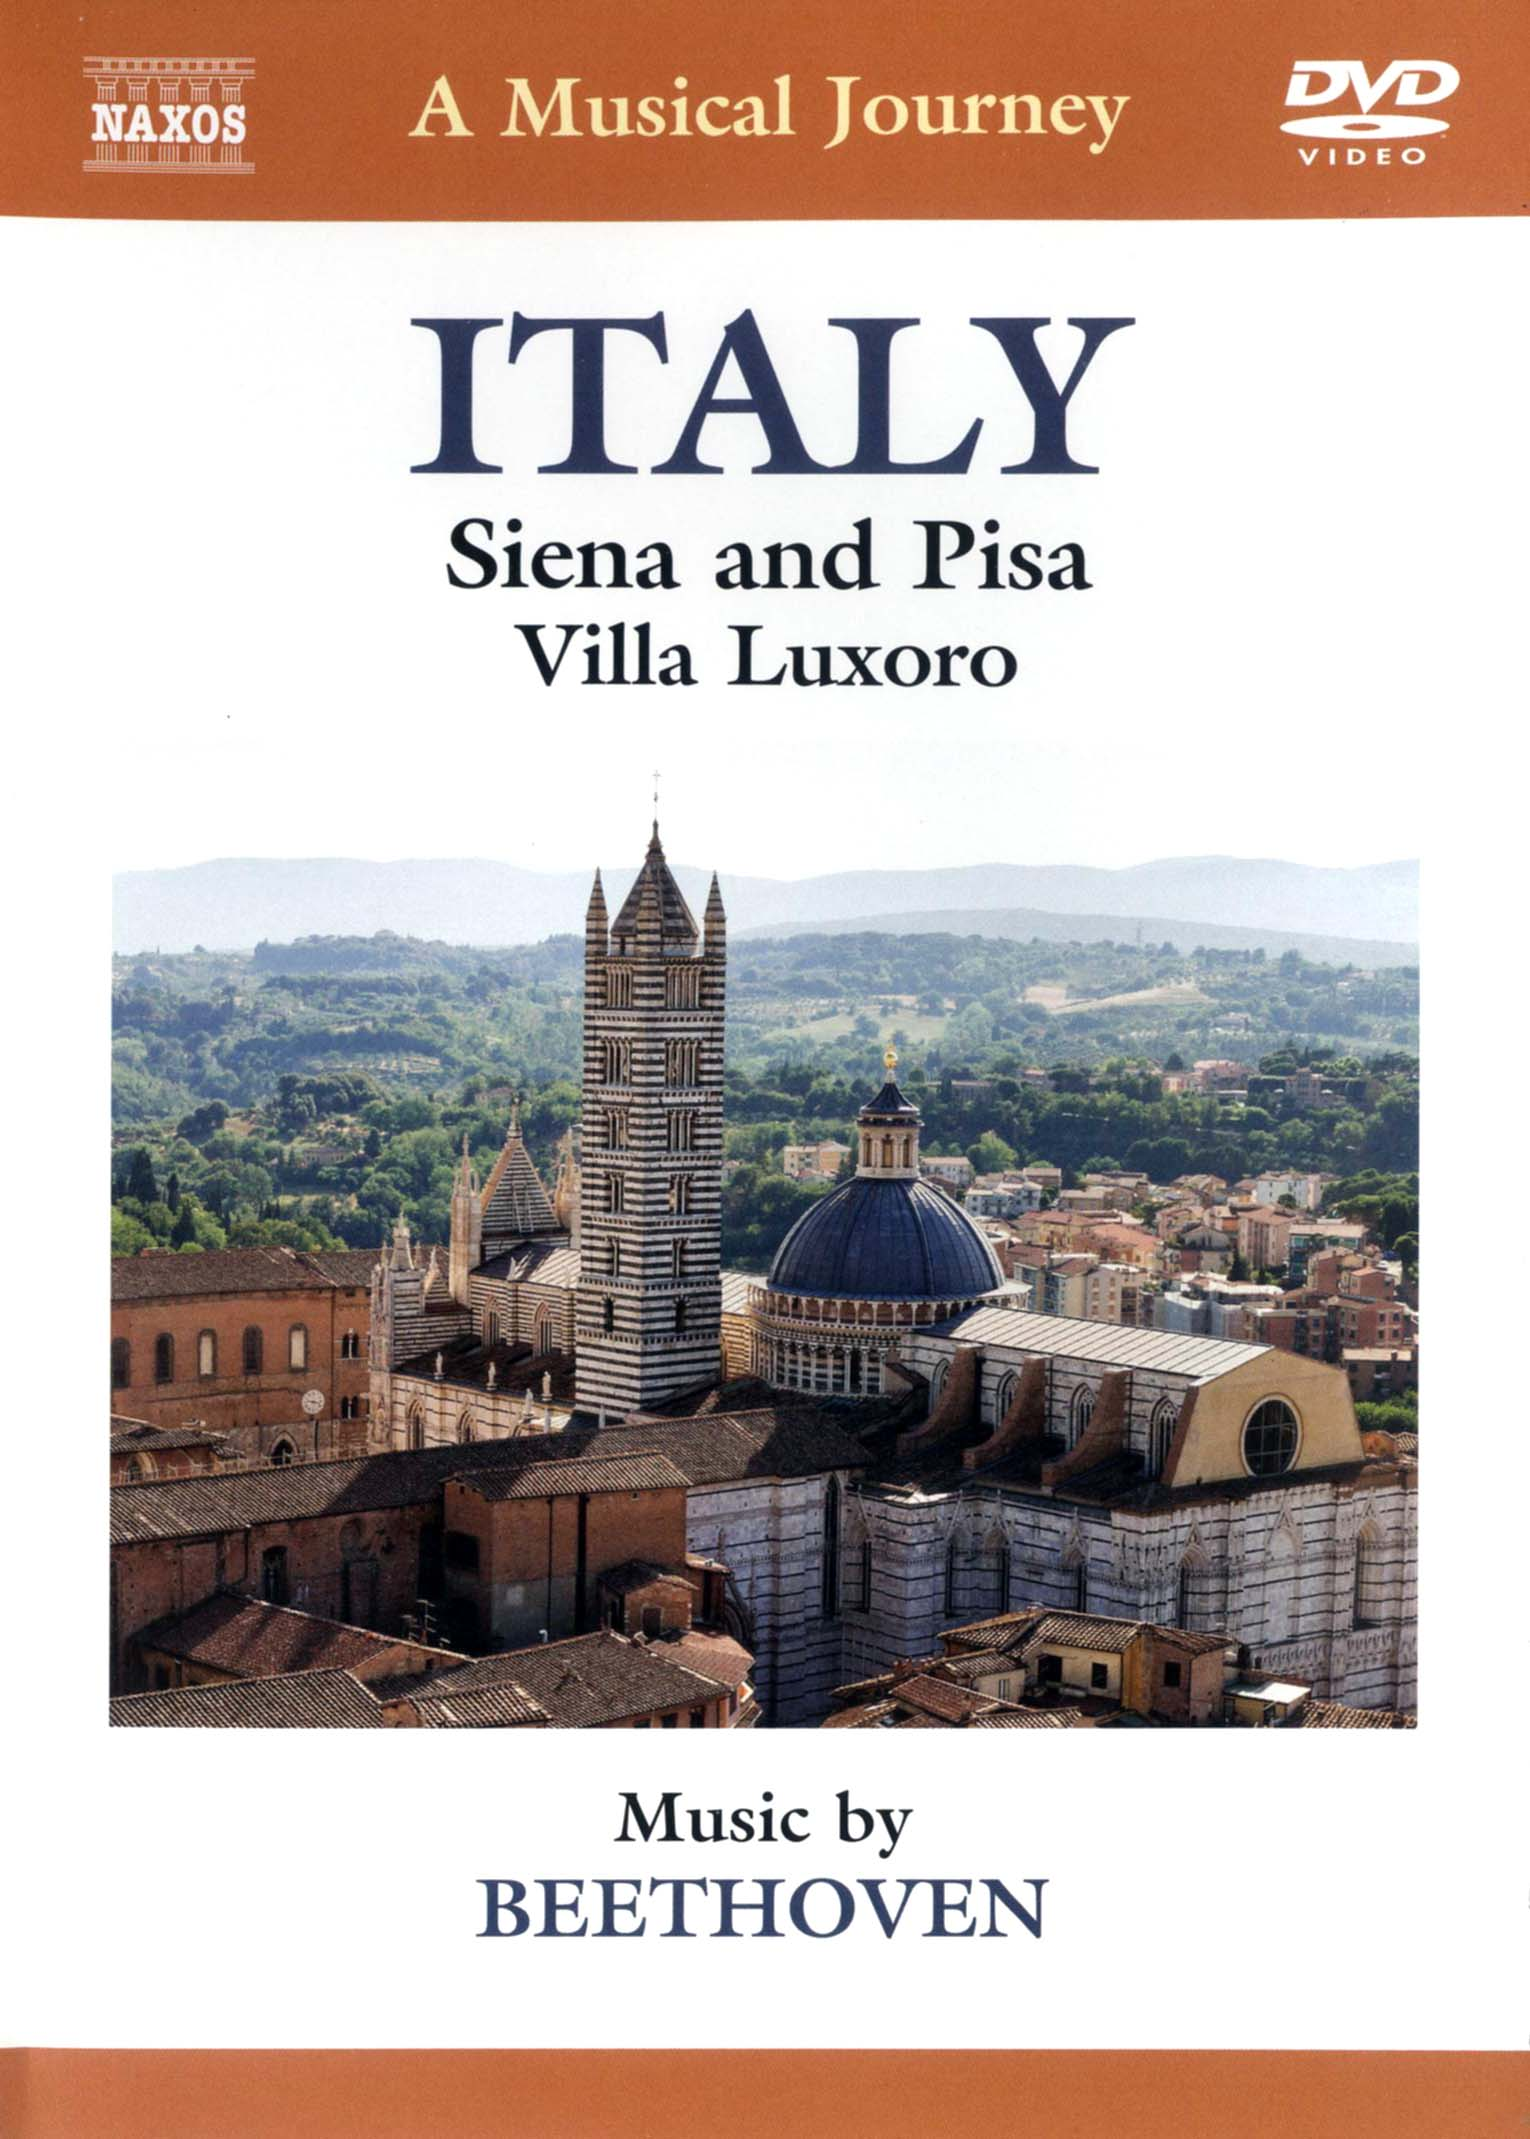 A Musical Journey: Italy - Siena and Pisa/Villa Luxoro